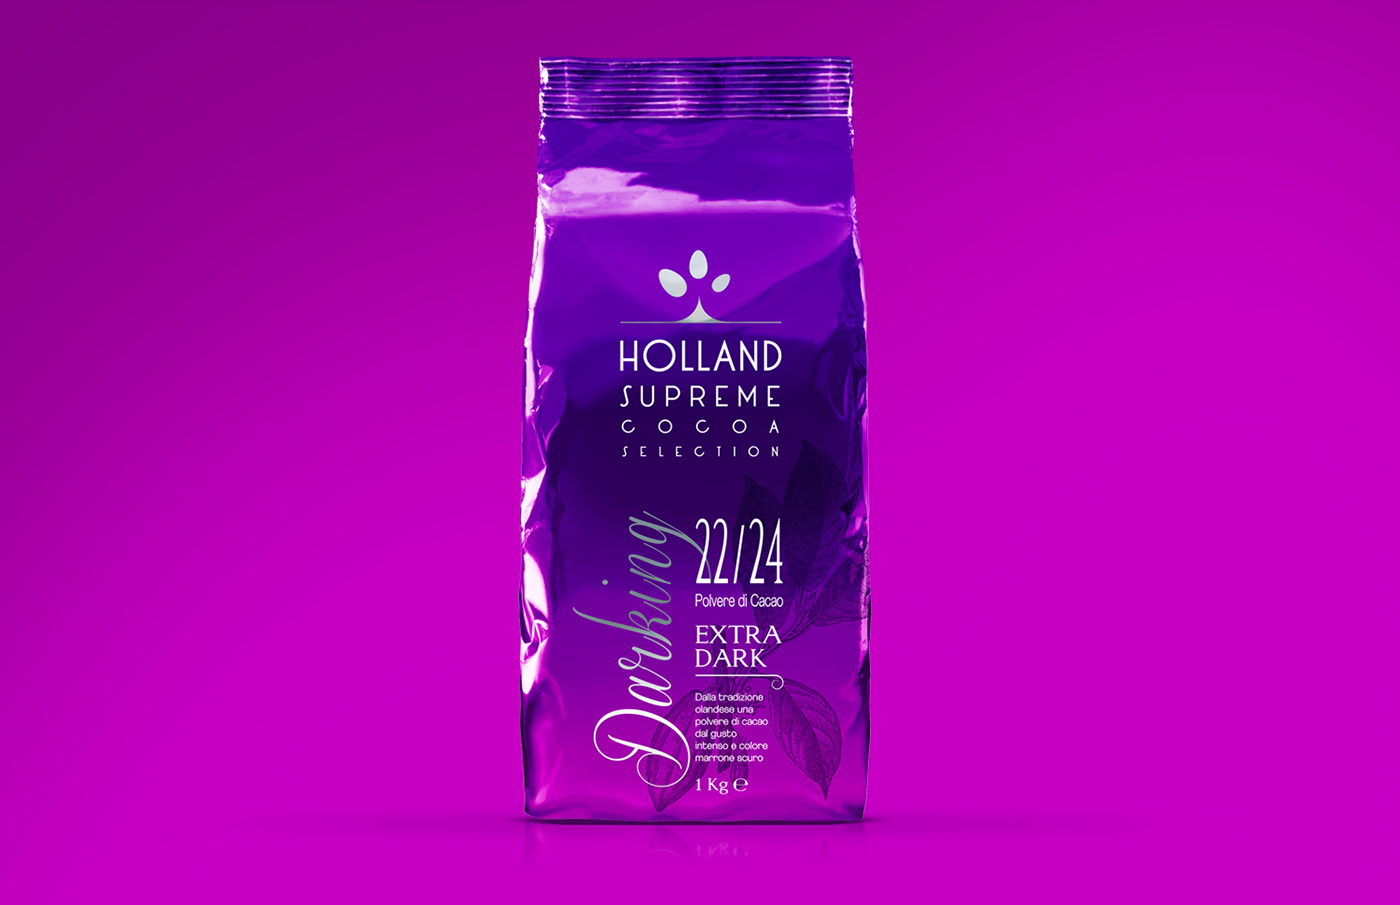 Holland Supreme: brand&identity creation